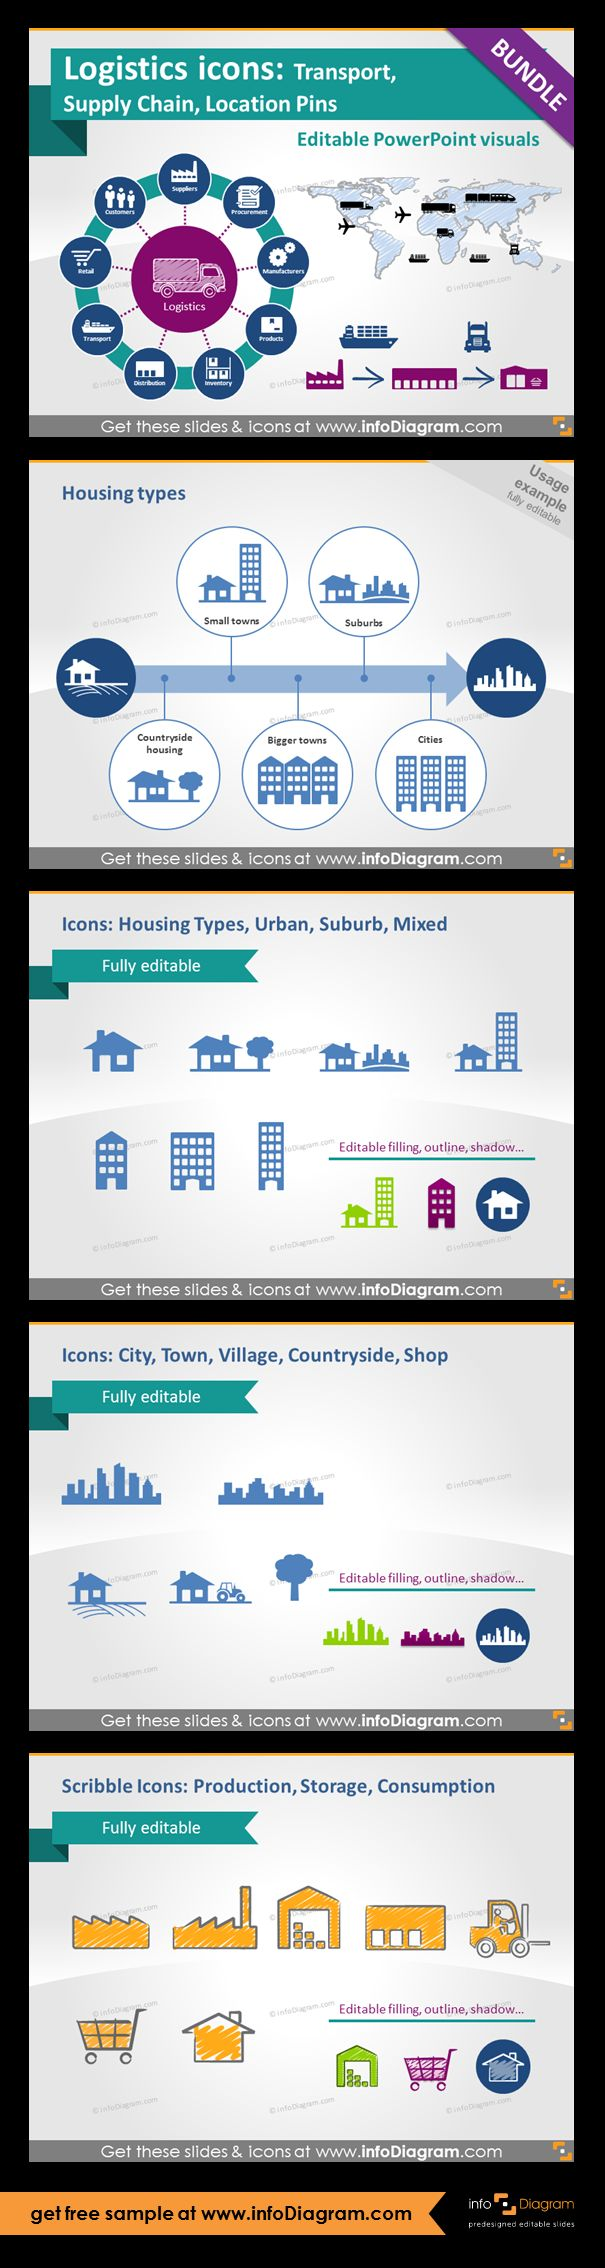 Location Logistics visuals: flat and scribble. Building types symbols: Individual House, House with a tree, Suburb house, Block of flats. Urban types symbols: Big city skyline, Smaller city skyline, Country side, Farm house, Shop building, Shopping cart. Housing types: from city, suburbs, town to countryside houses.